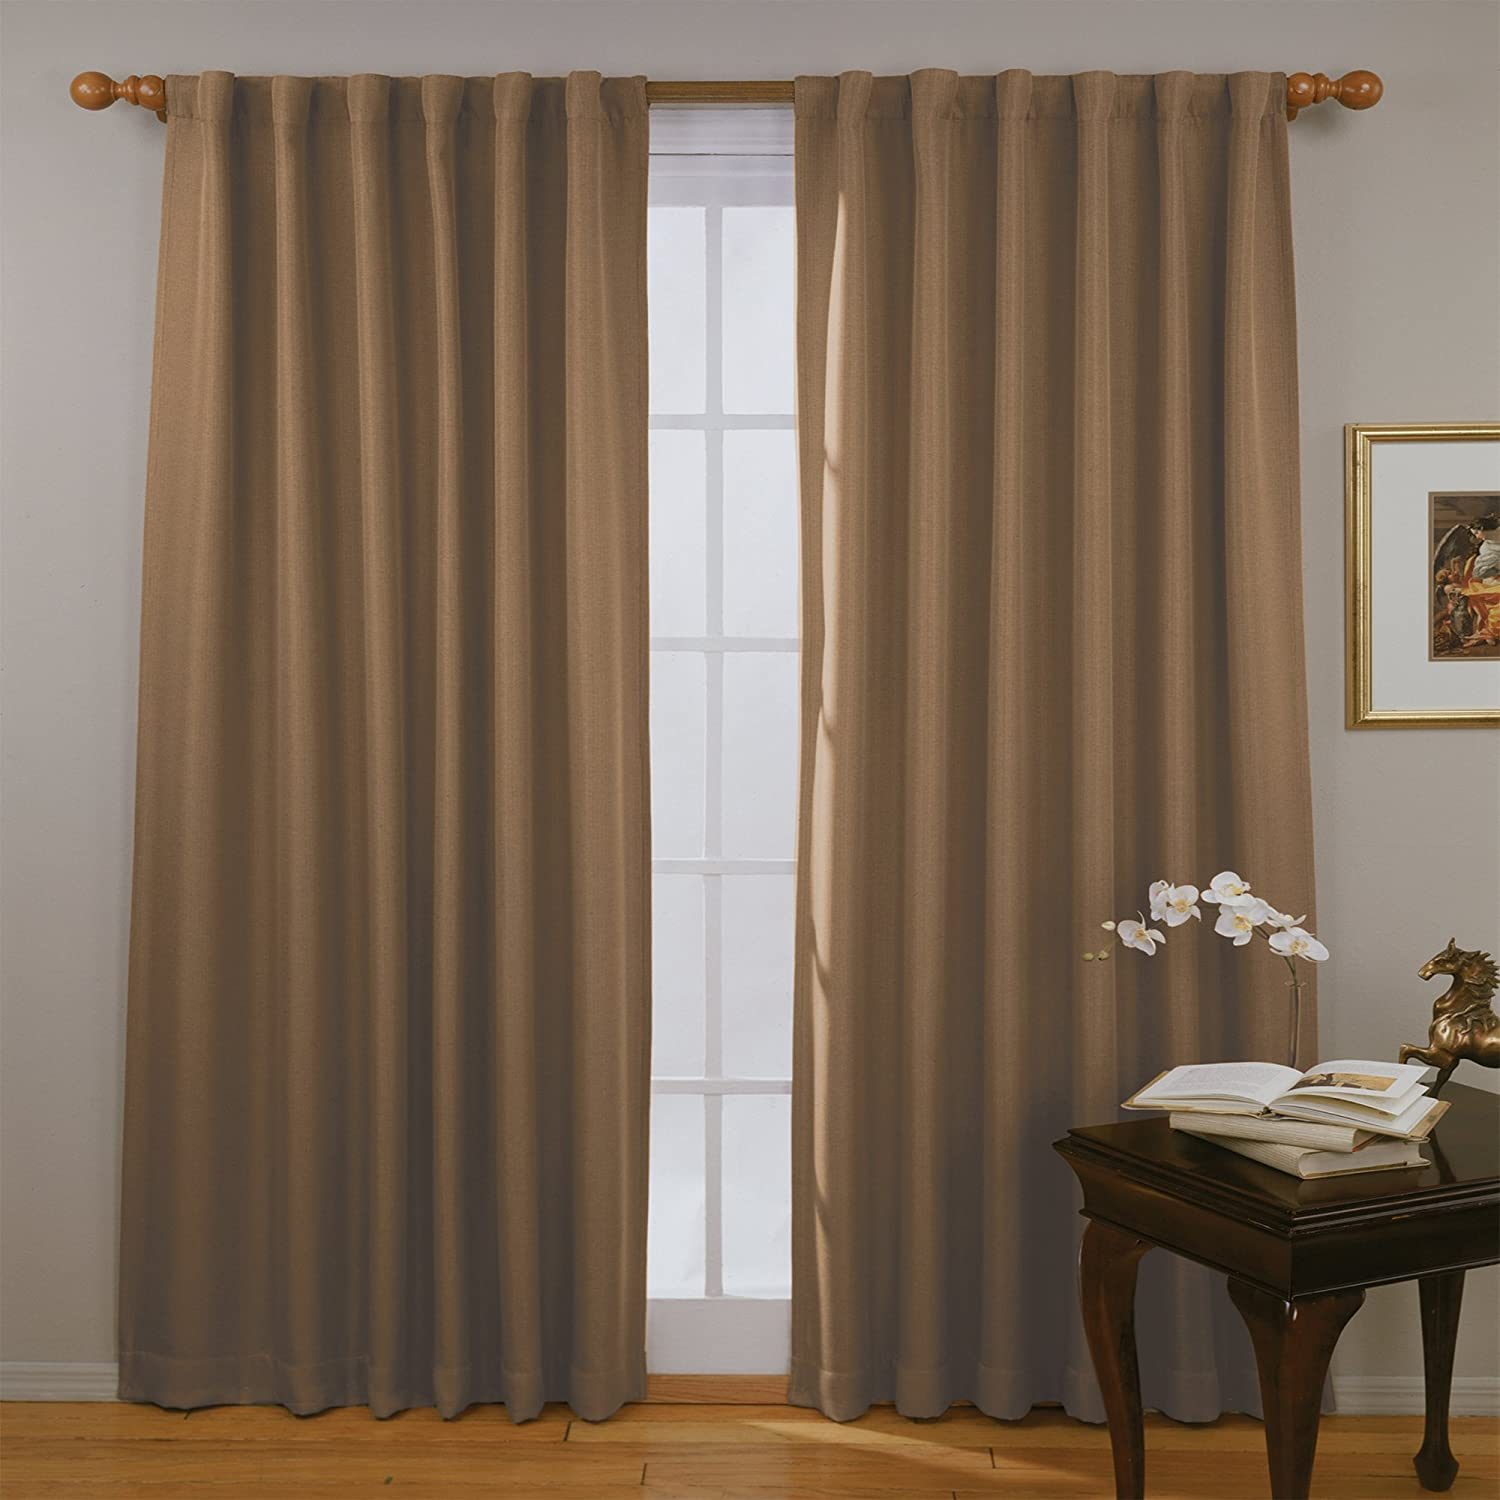 Eclipse Fresno Blackout Window Curtain Panel, 63, Mushroom 63 Ellery Homestyles 11353052063MSH